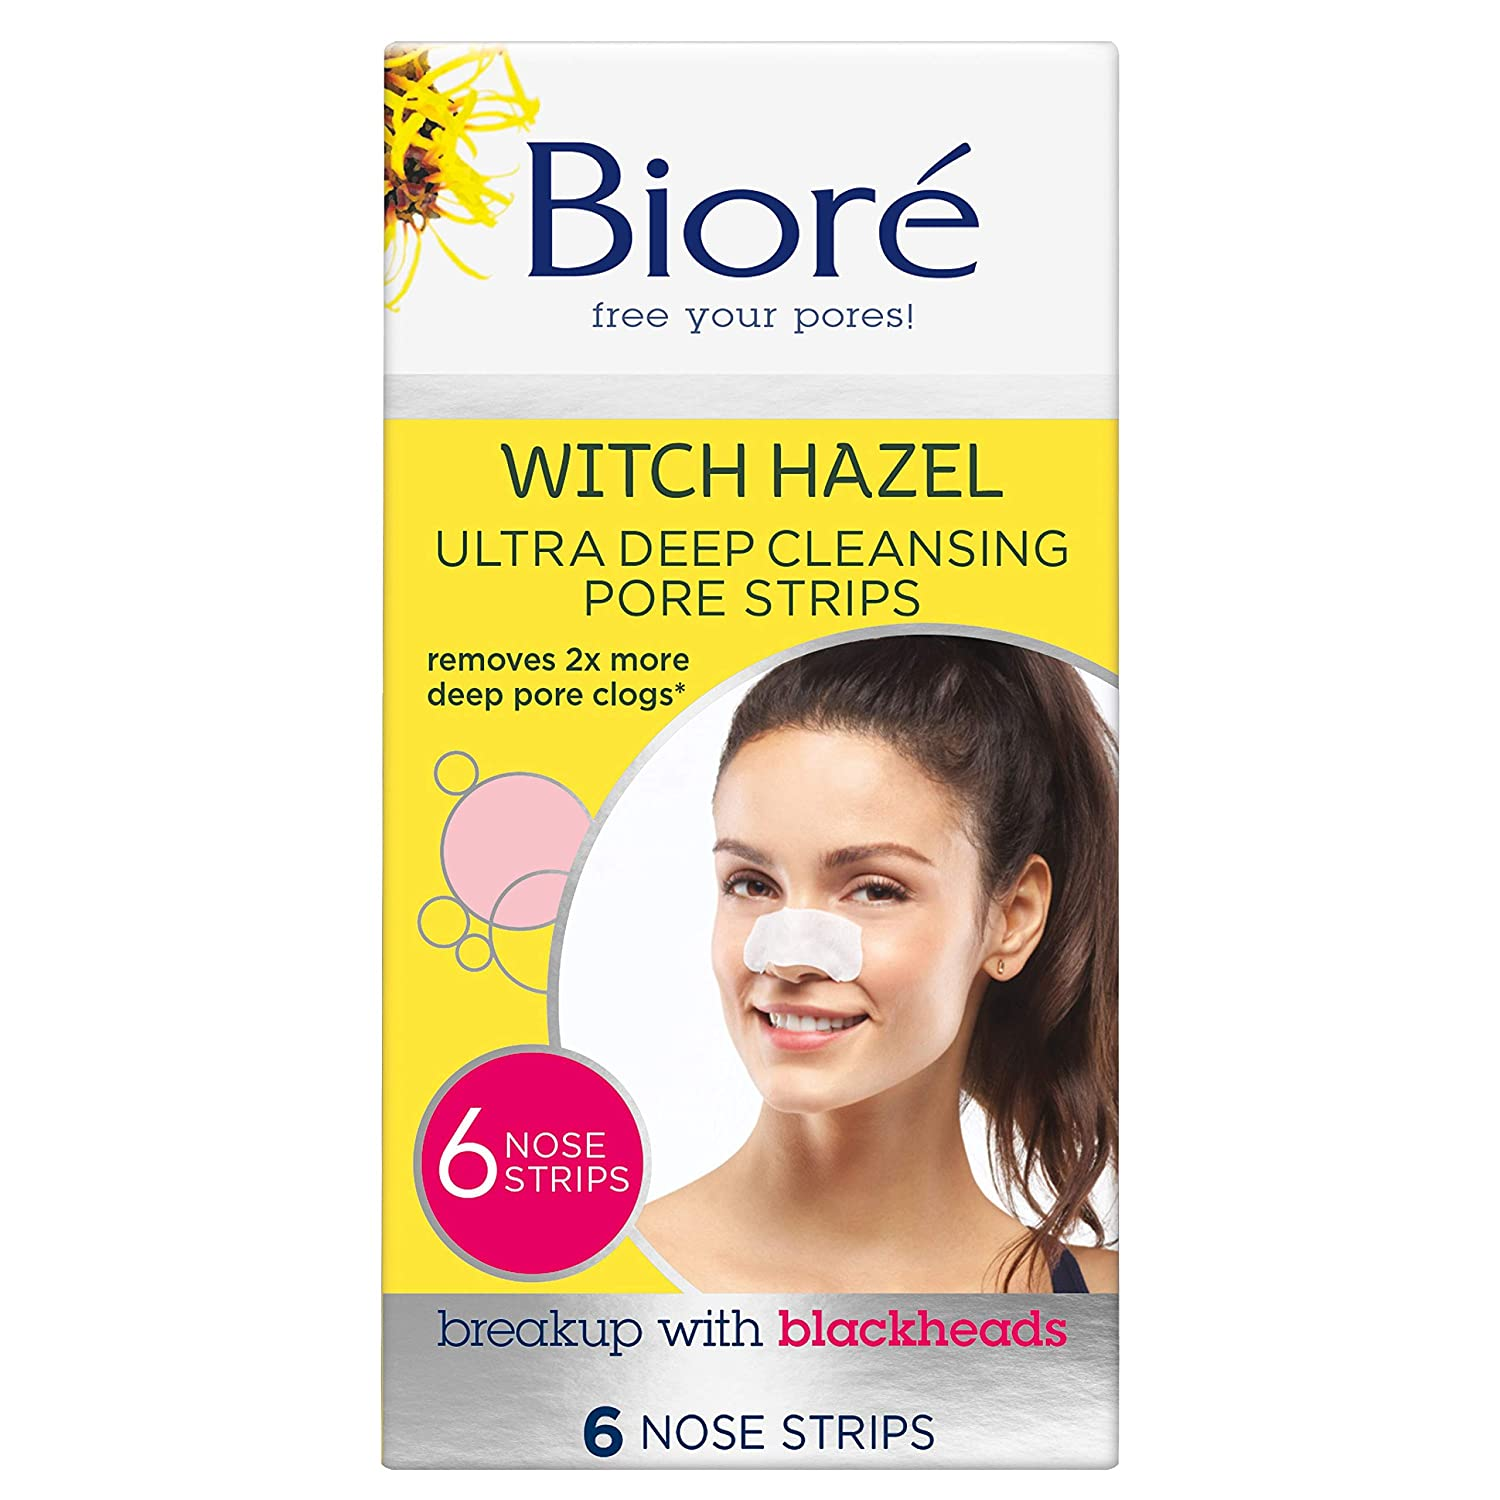 Bioré Witch Hazel Ultra Cleansing Pore Strips, 6 Nose Strips, Clears Pores up to 2x More than Original Pore Strips, features C-Bond Technology, Oil-Free, Non-Comedogenic Use (Packaging May Vary): Beauty